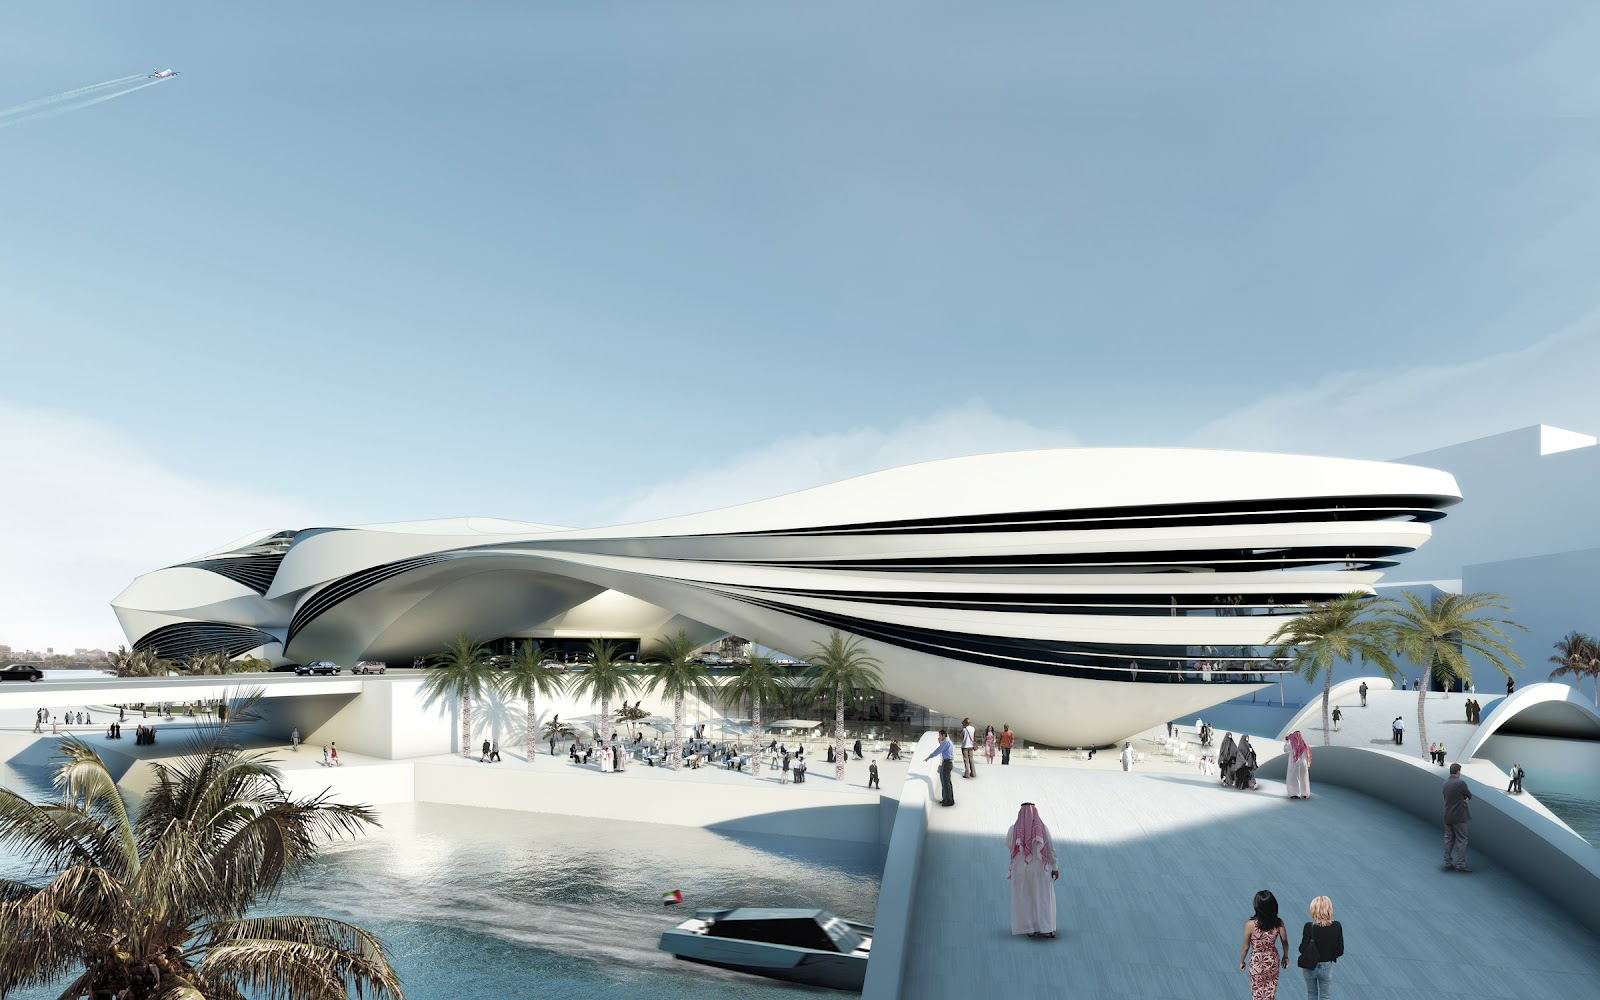 Modern architecture museum of middle eastern modern art by unstudio dubai uae